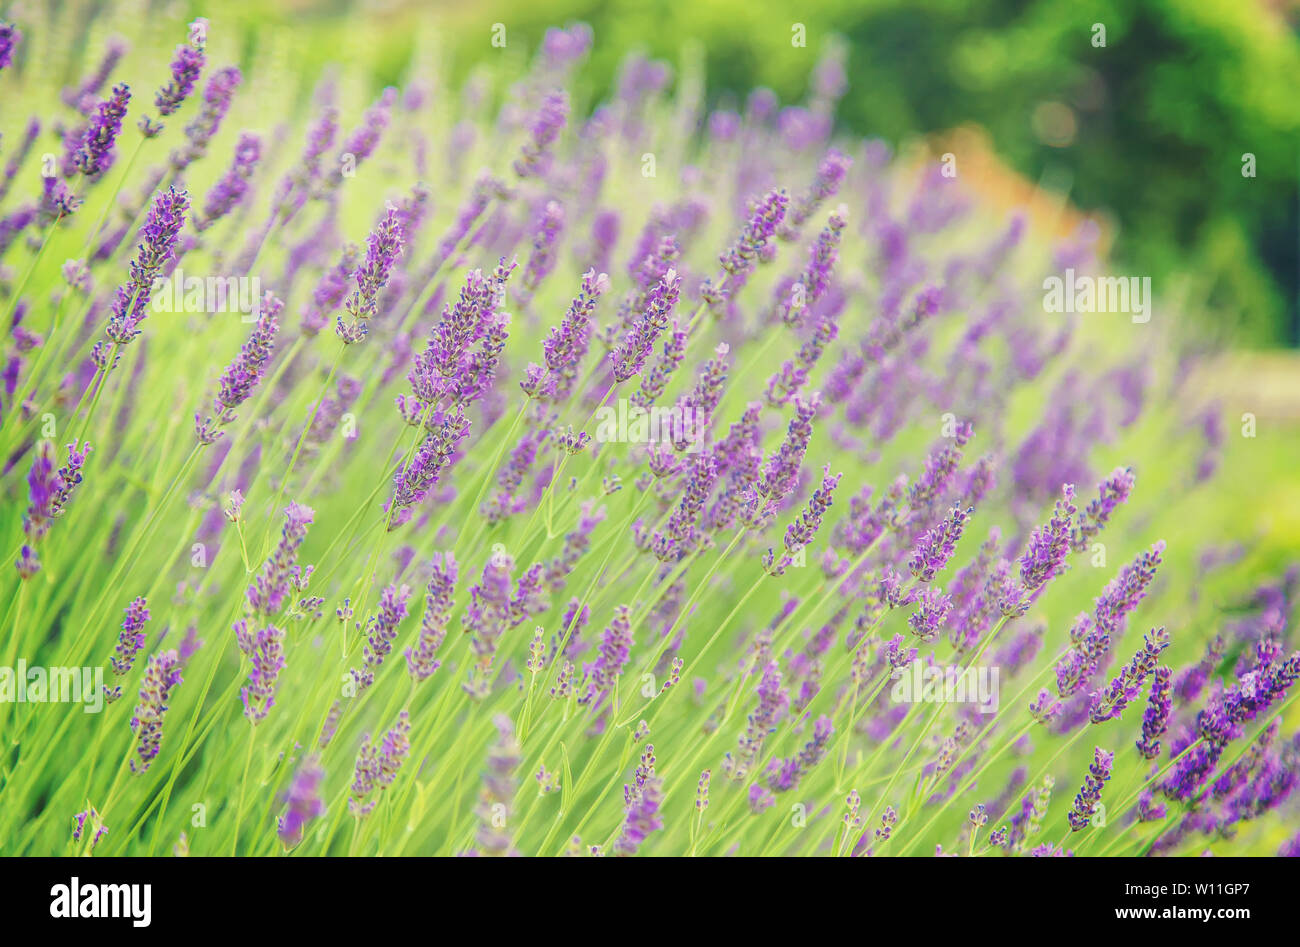 Blooming lavender field. Summer flowers. Selective focus nature Stock Photo